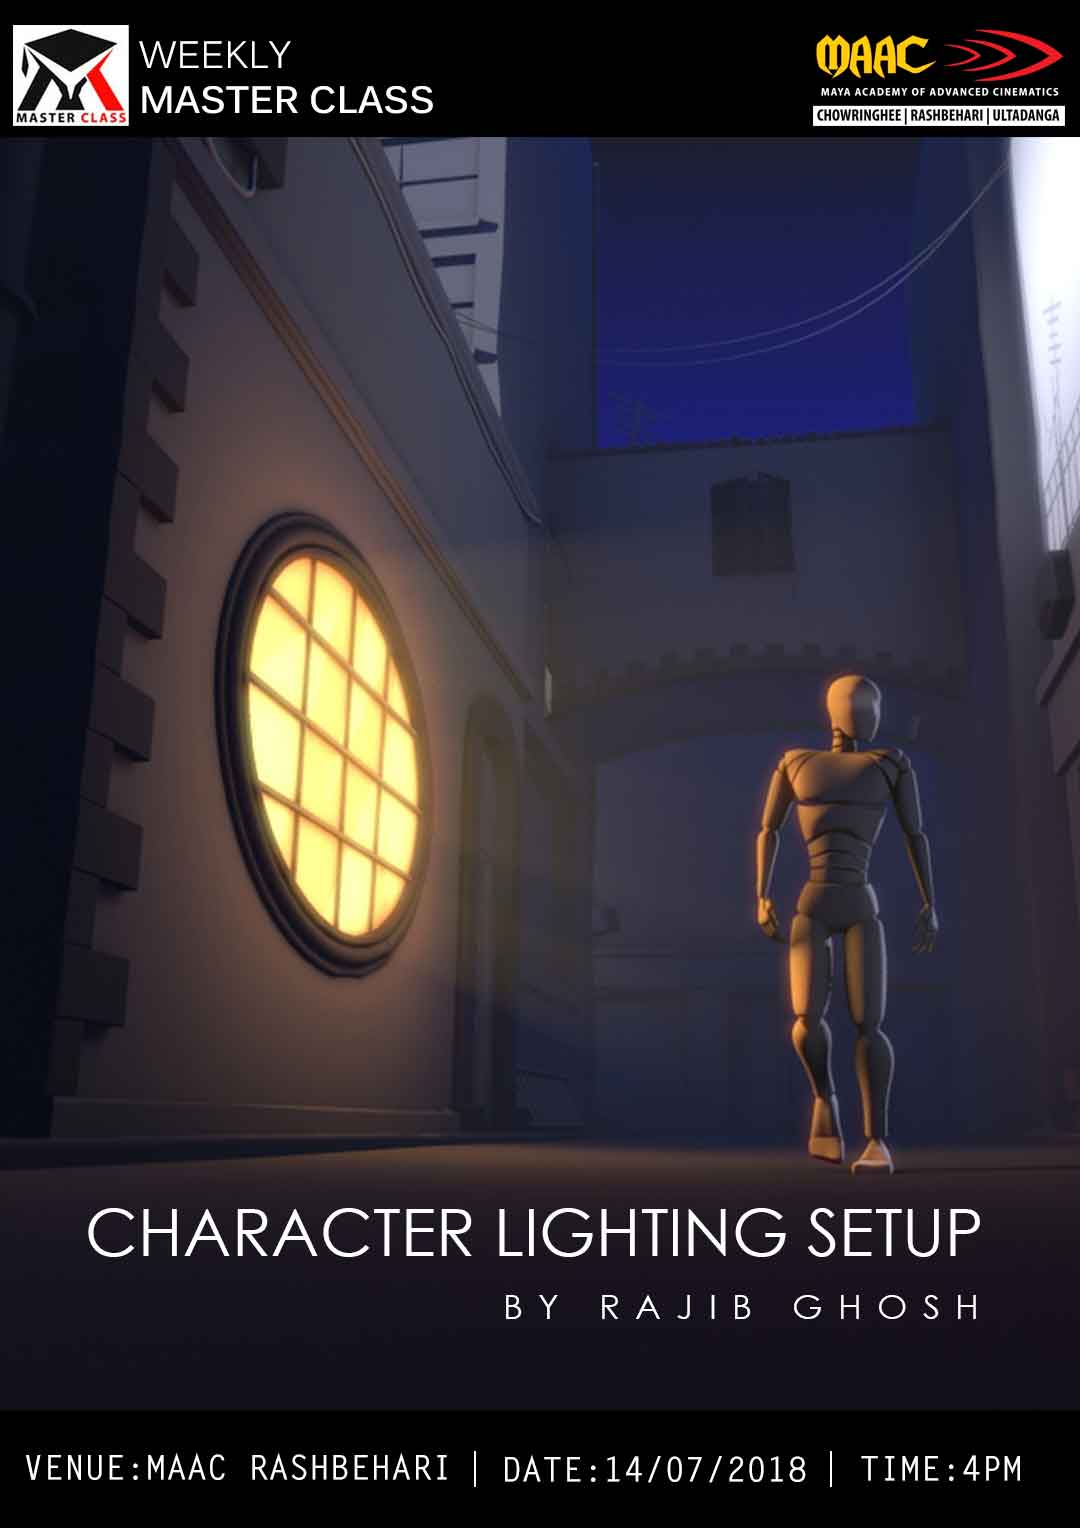 Weekly Master Class on Character Lighting Setup